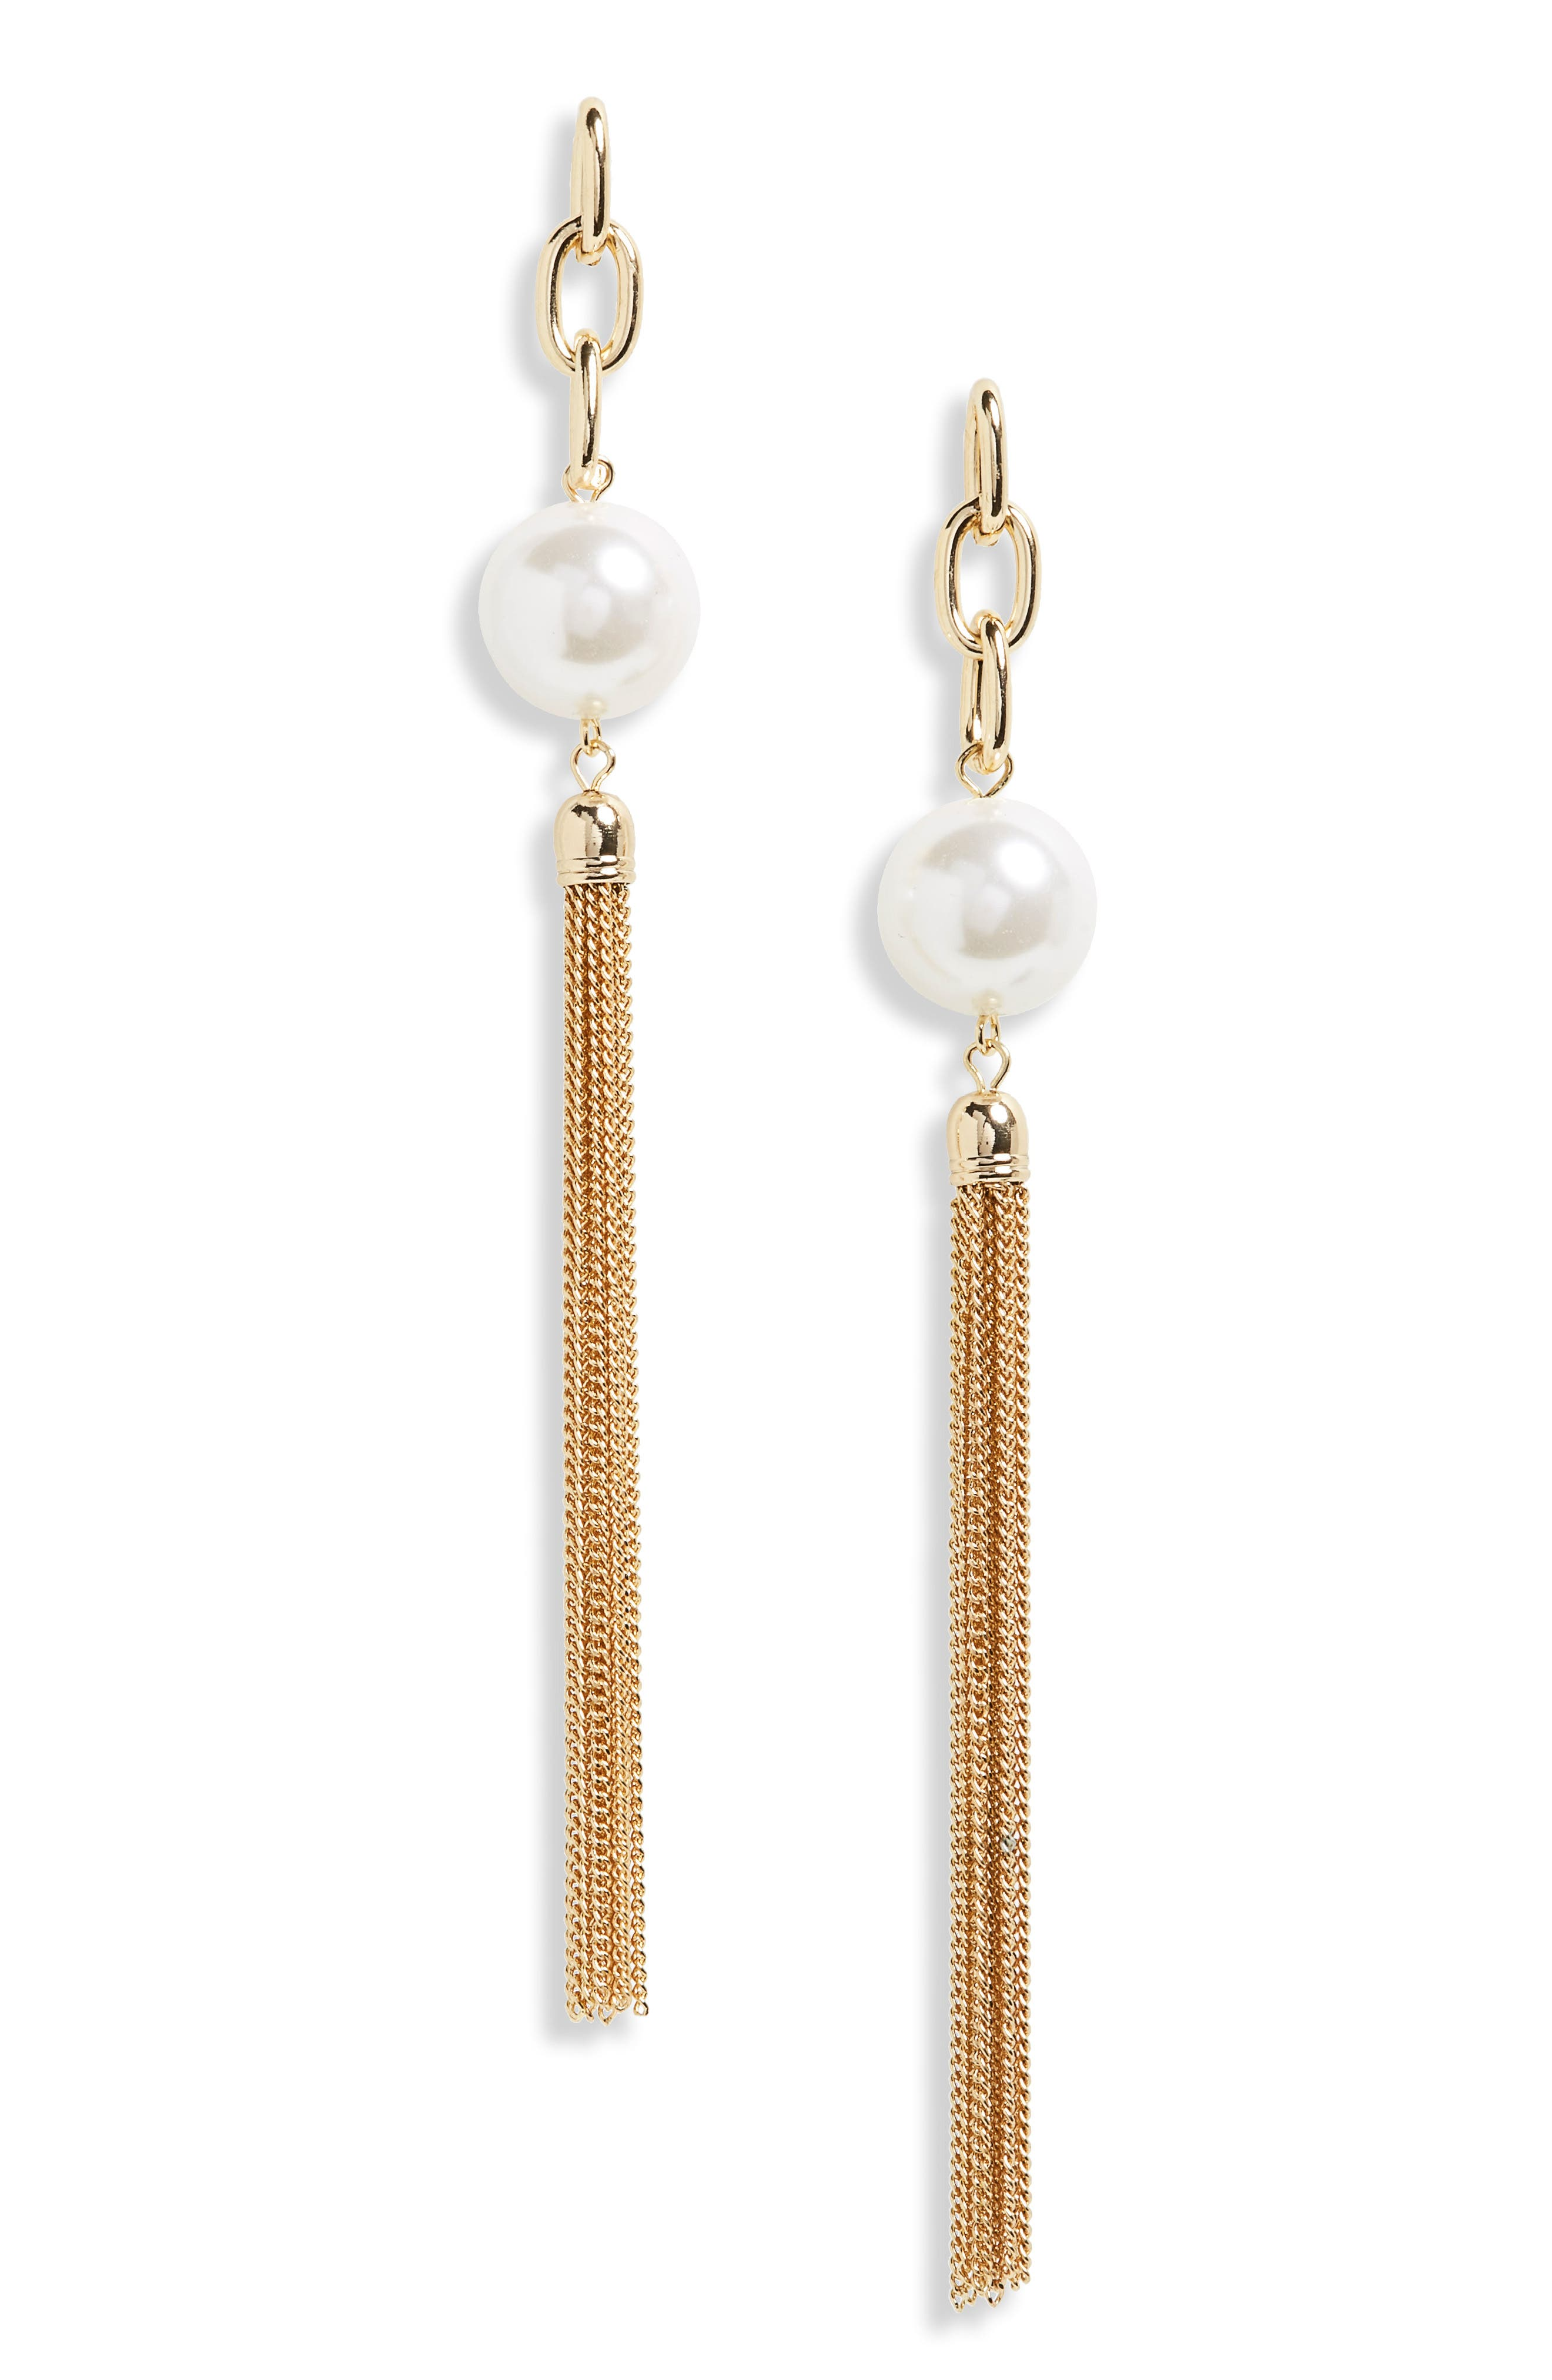 Imitation Pearl Fringe Earrings,                         Main,                         color, Gold/ Pearl